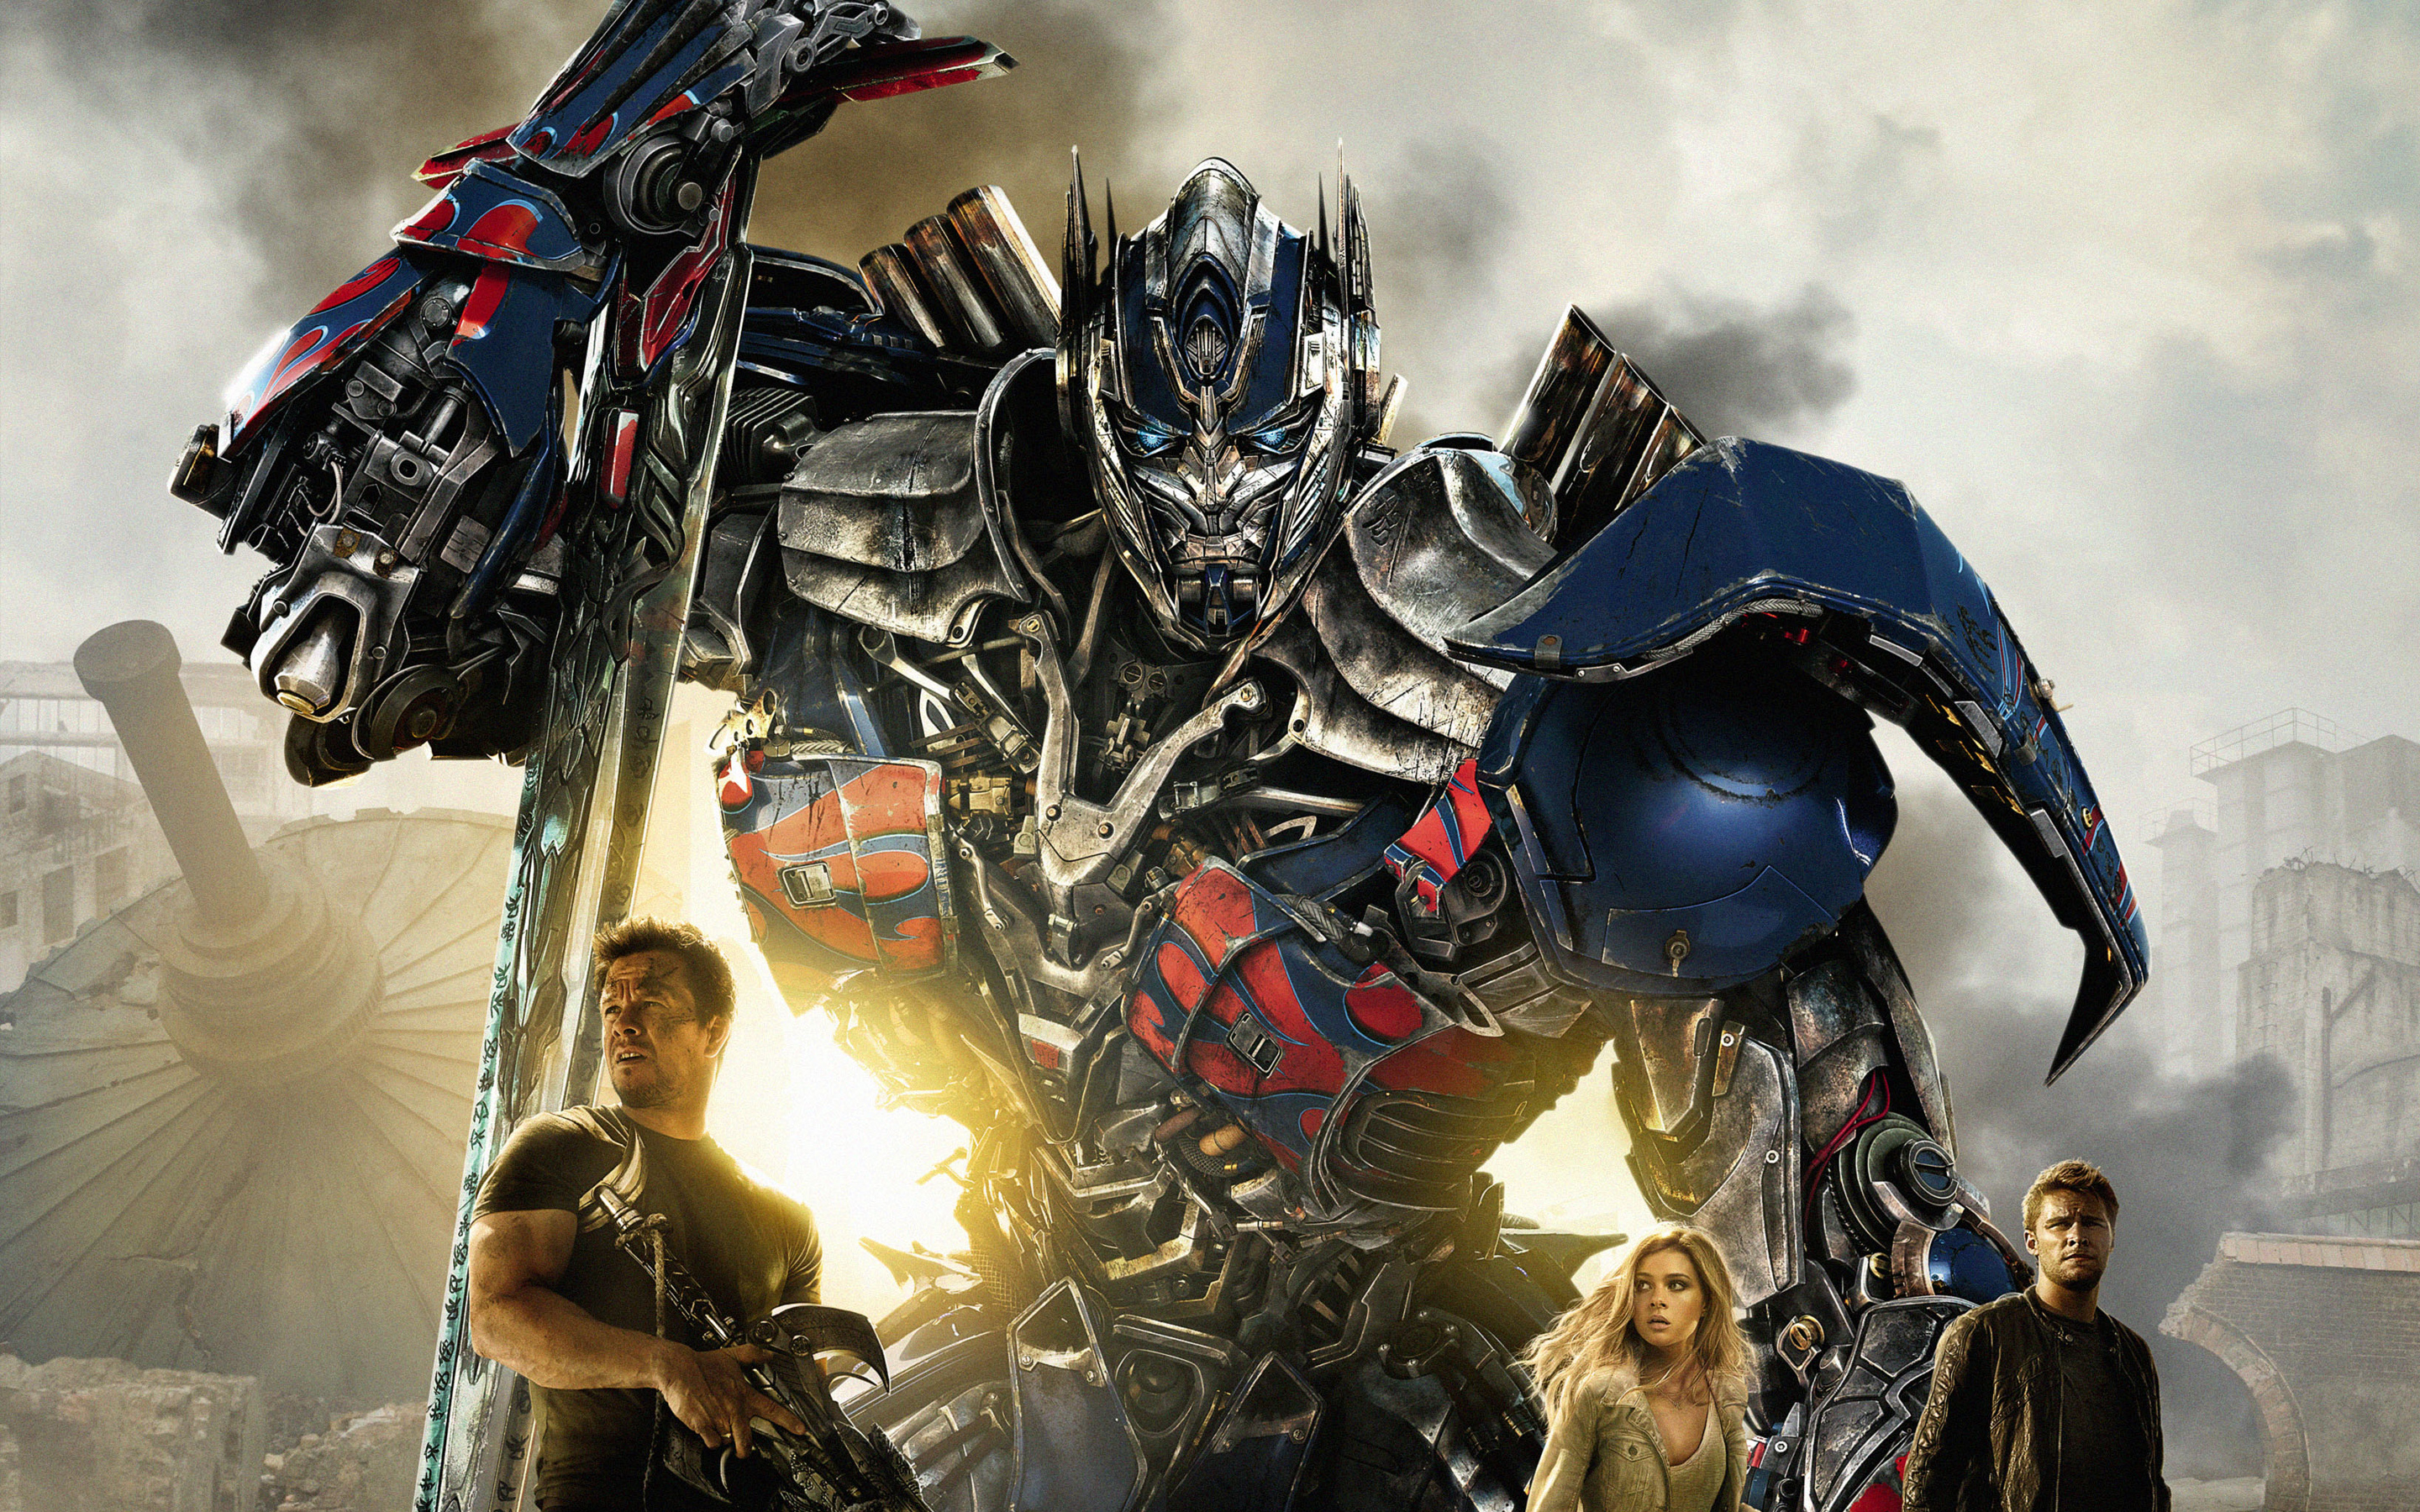 transformers 4 age of extinction wallpapers | wallpapers hd